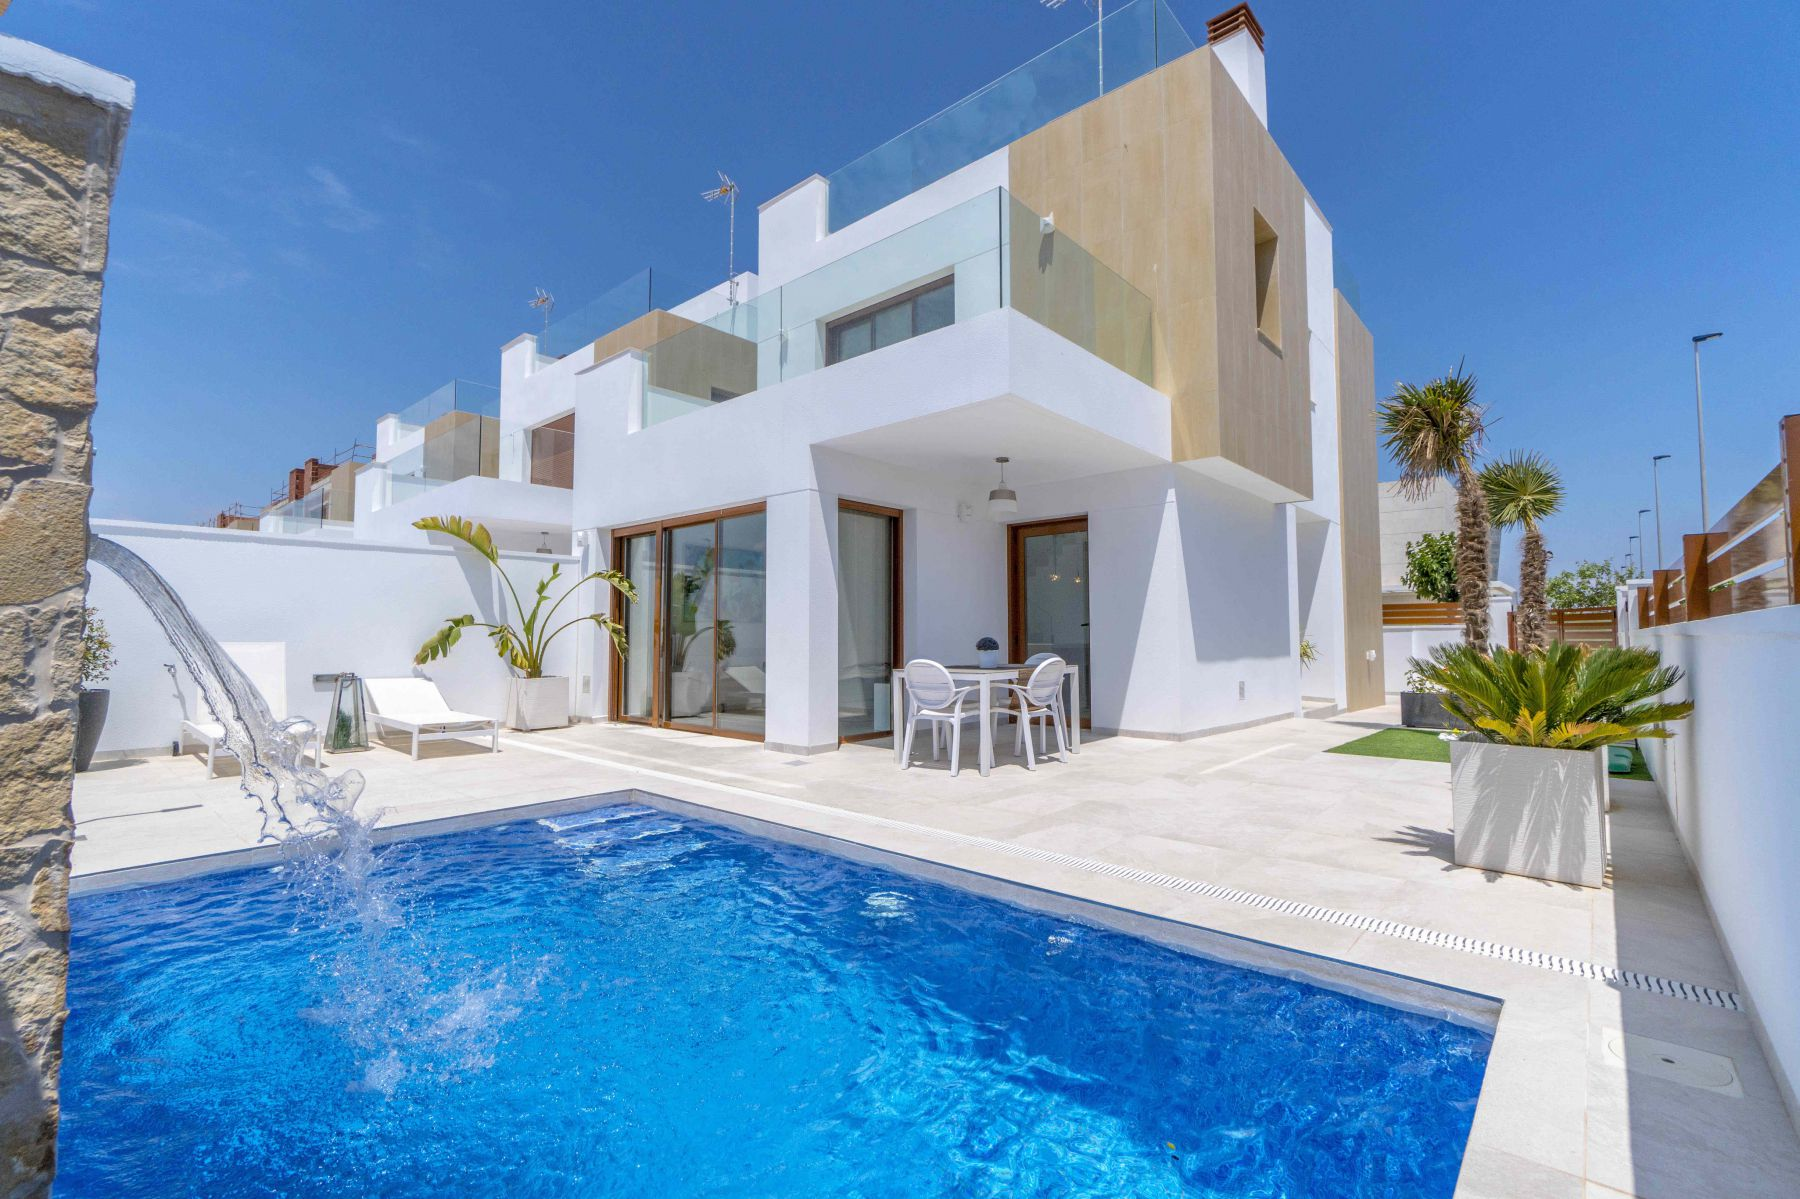 3 Bedrooms Detached Villas with Swimming Pool For Sale in Torre de la Horadada